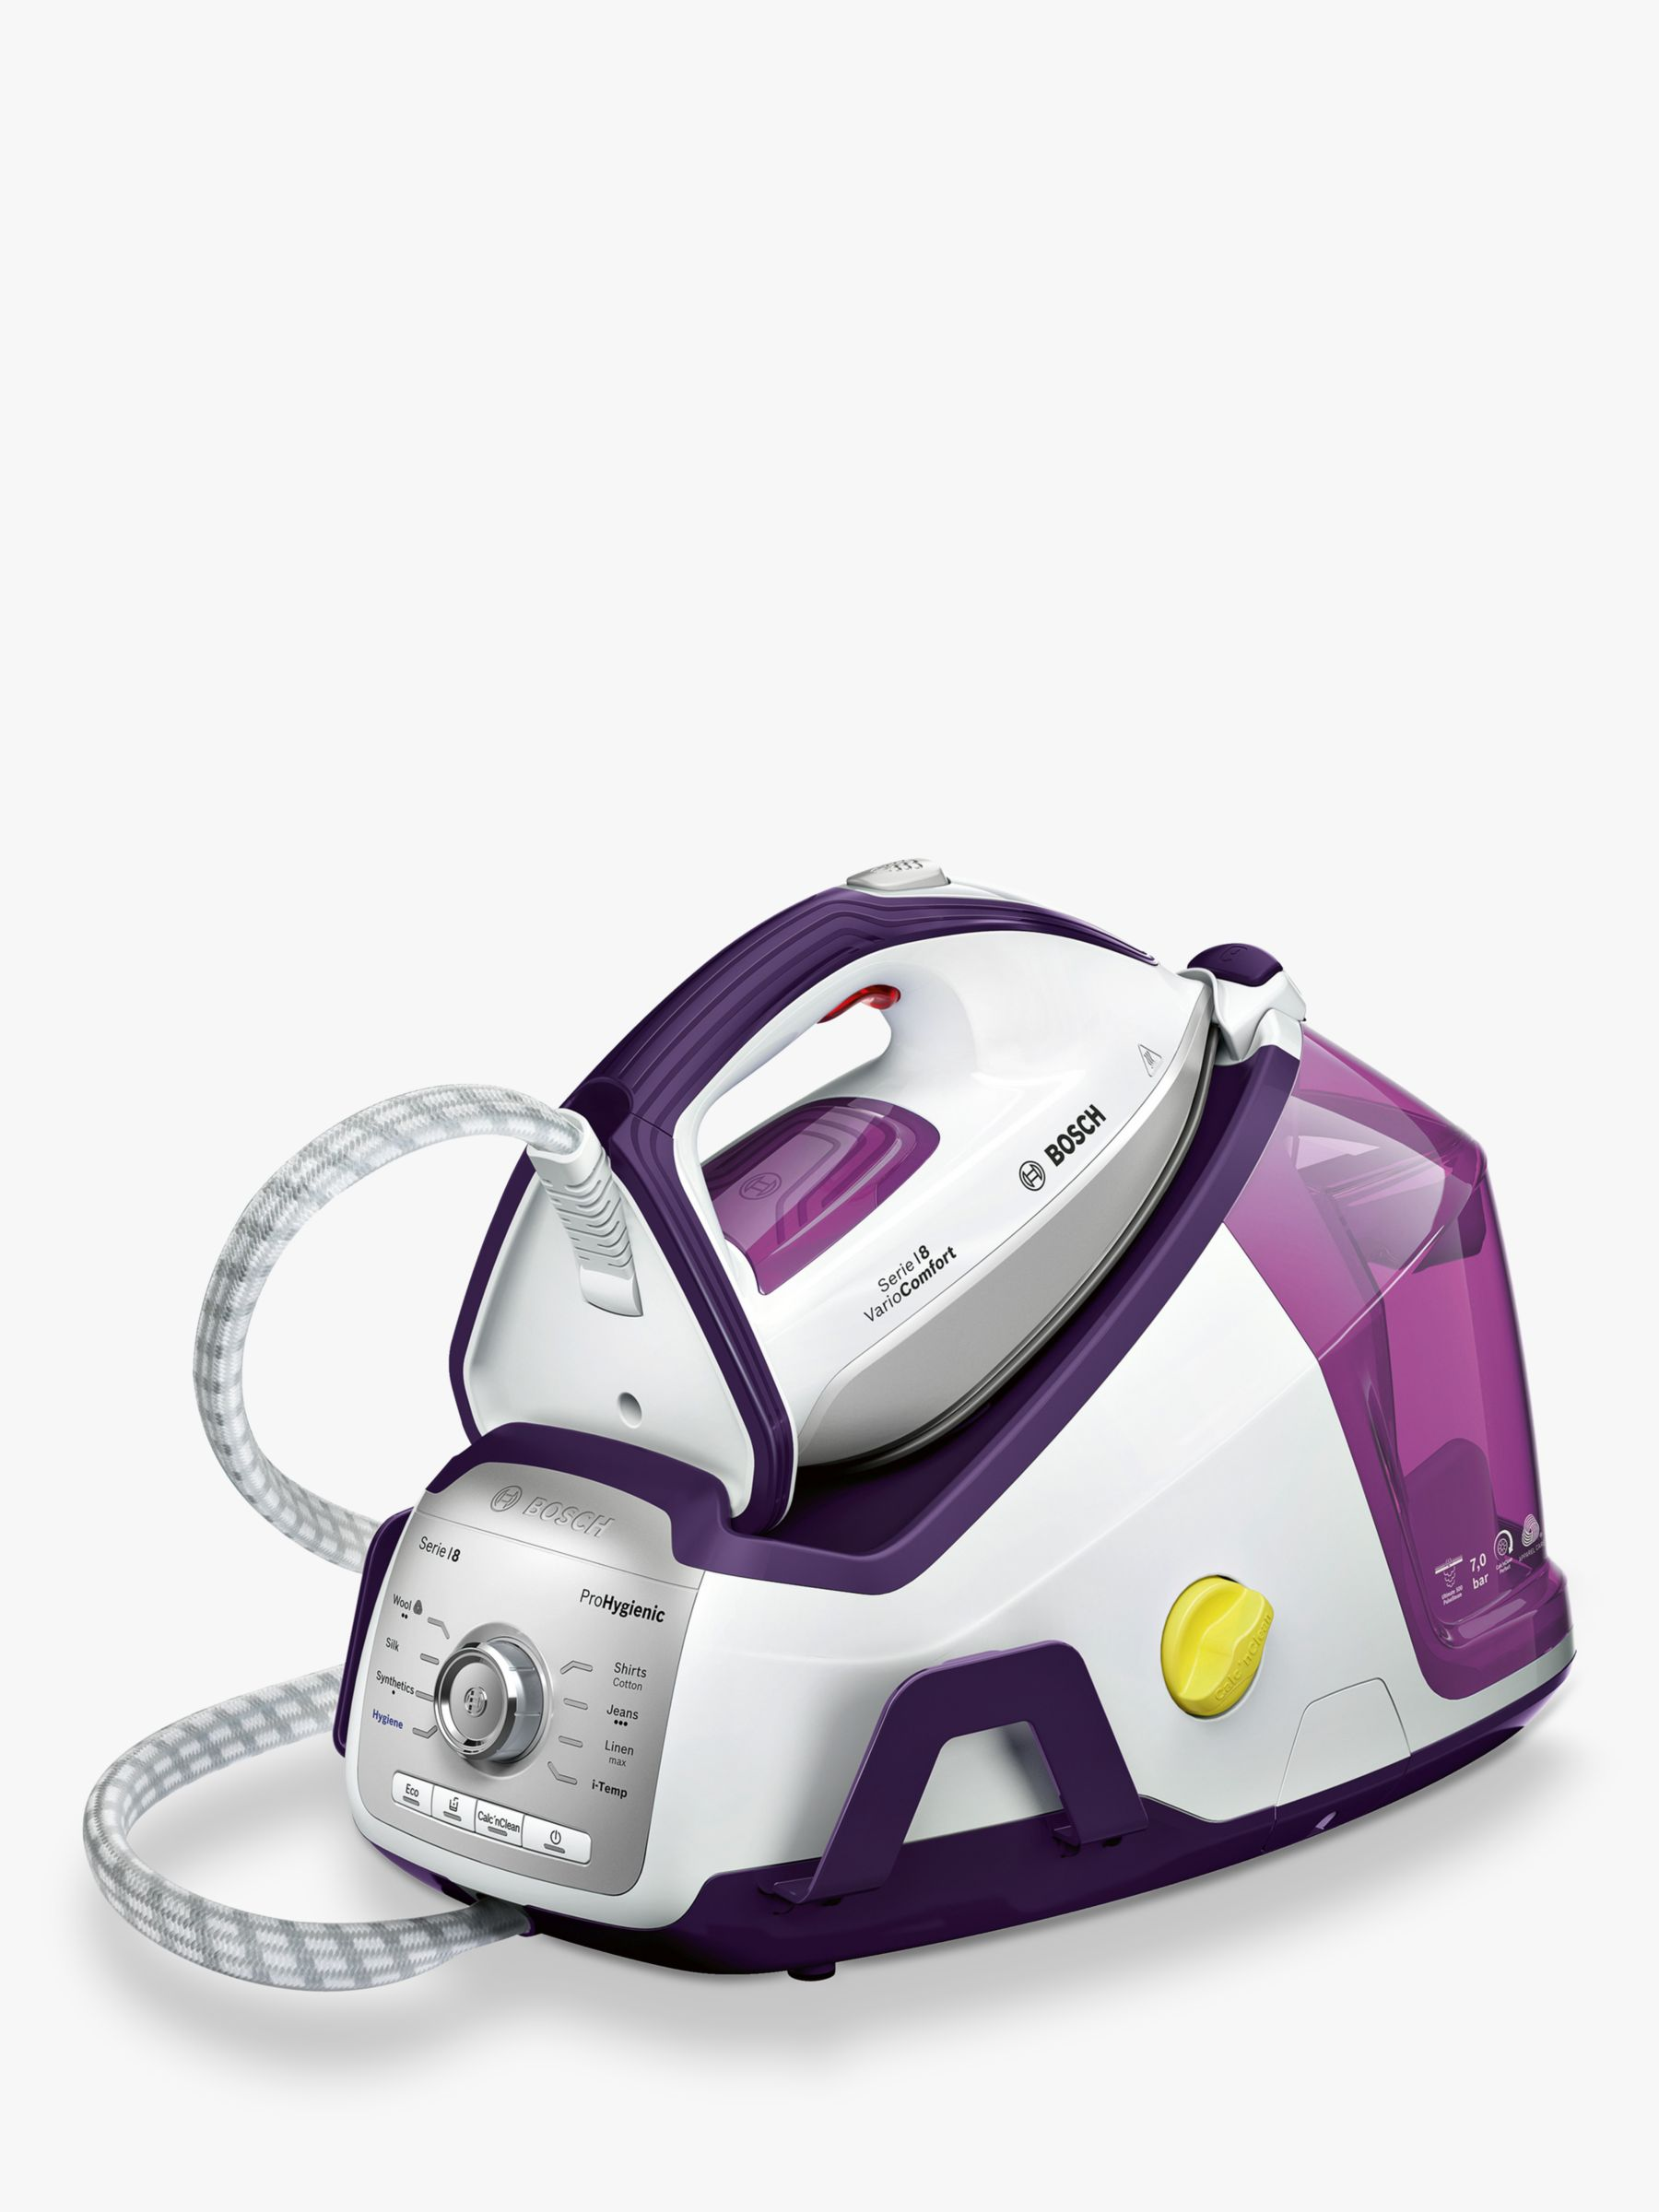 Buy Bosch TDS8040GB ProHygienic Steam Generator Iron, Purple Online at johnlewis.com